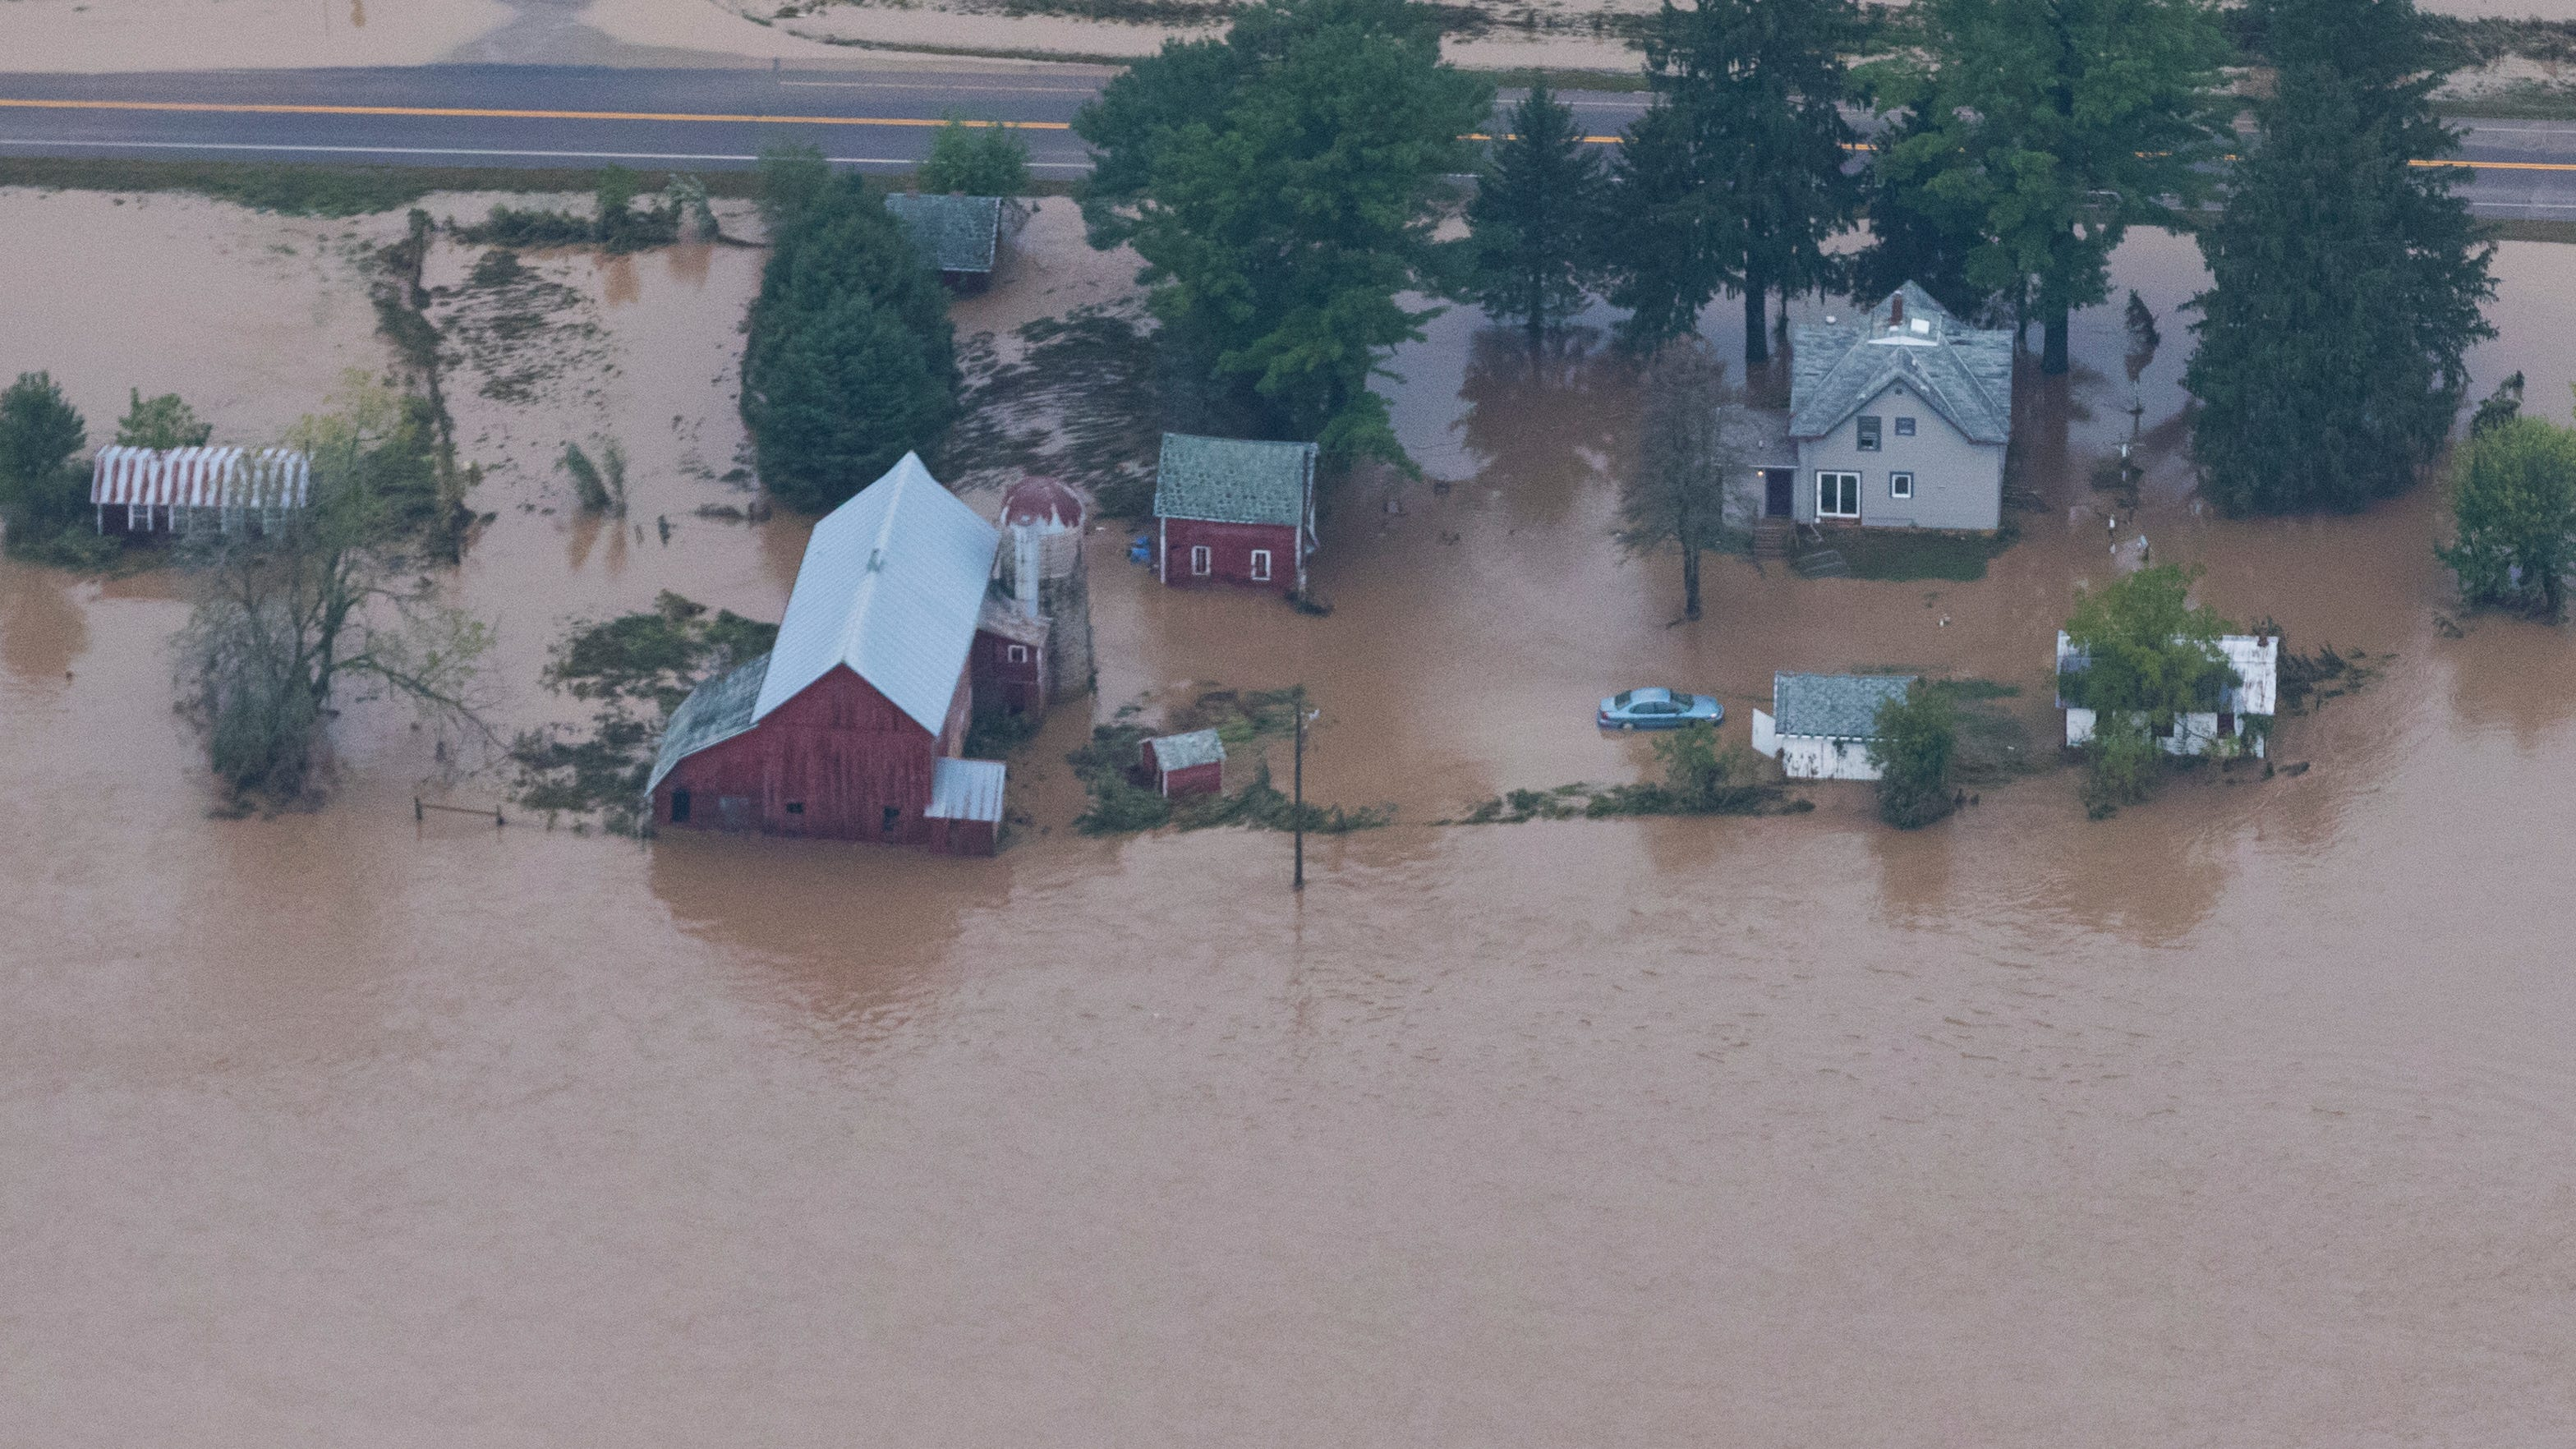 Wisconsin flooding: more rain coming Tuesday afternoon, night